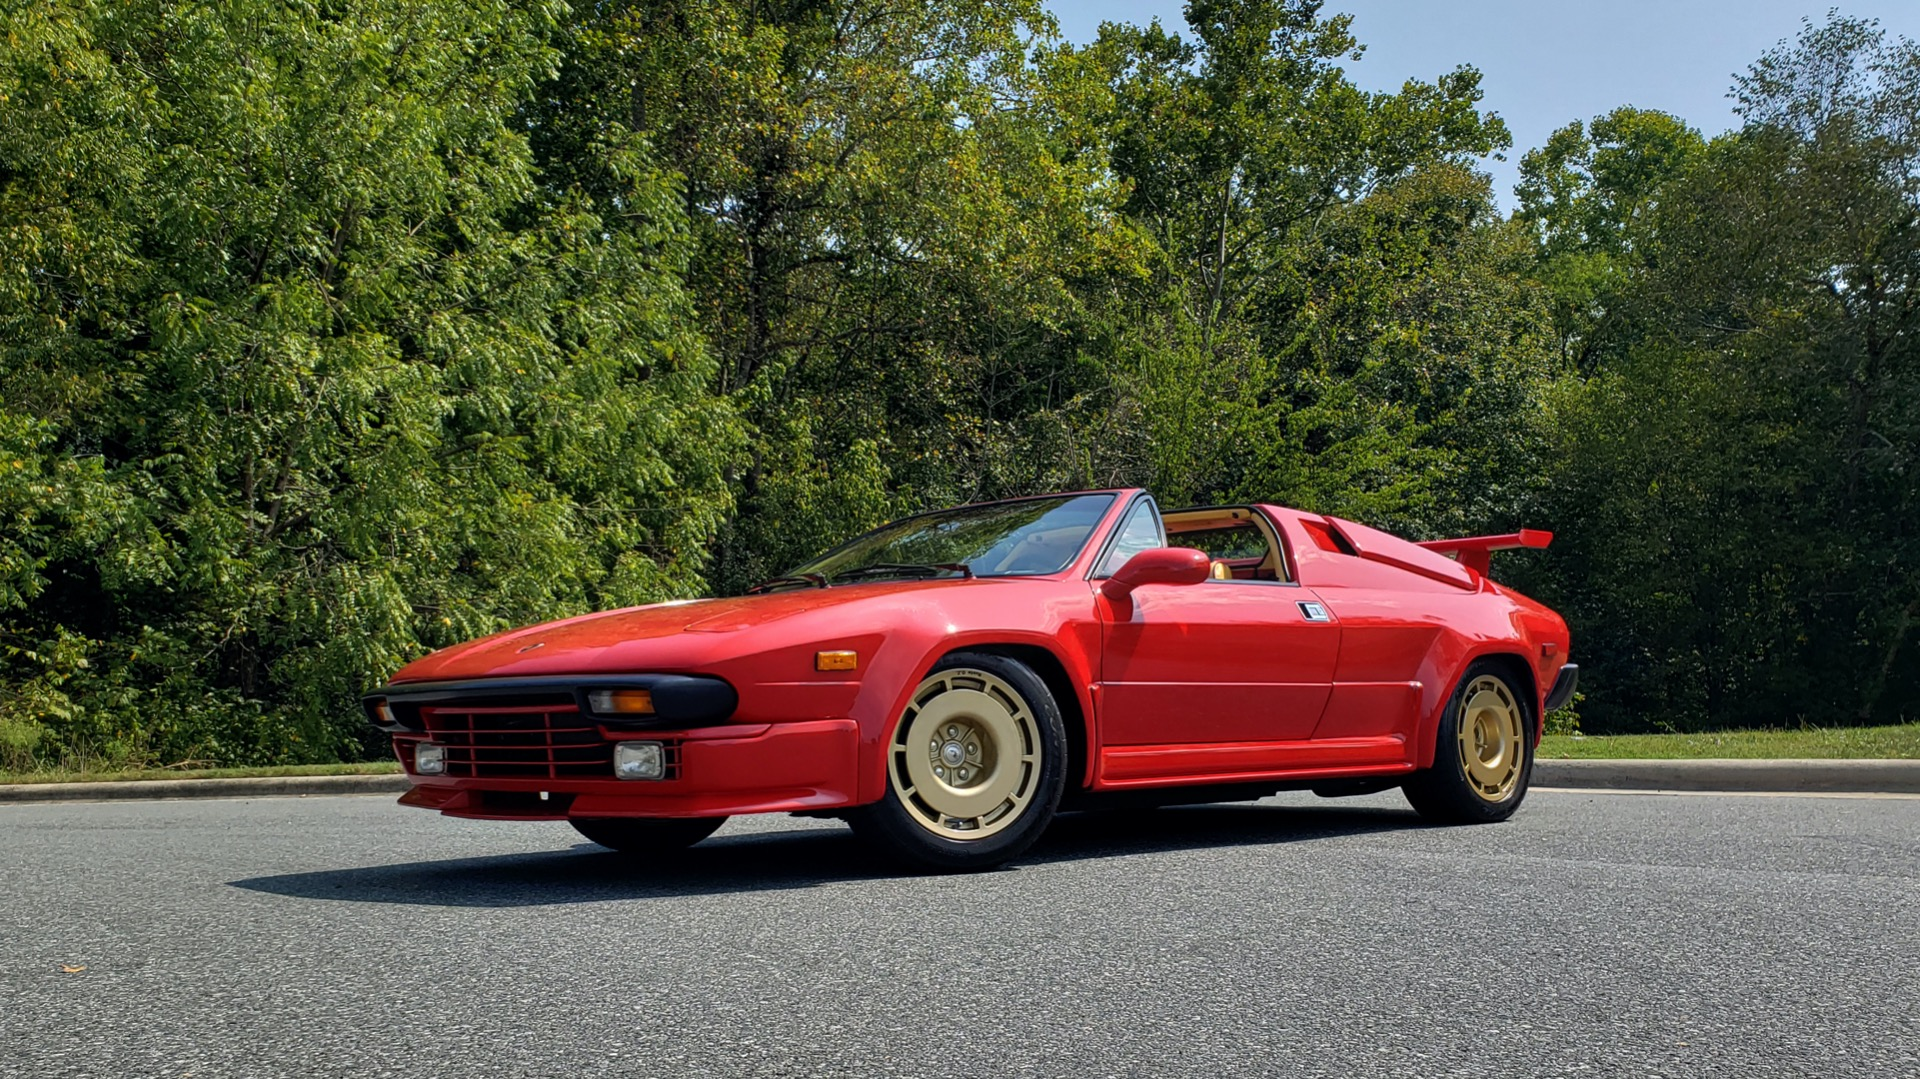 Used 1988 Lamborghini JALPA 3.5 / 5-SPD MANUAL / LOW MILES / EXCELLENT CONDITION for sale Sold at Formula Imports in Charlotte NC 28227 20